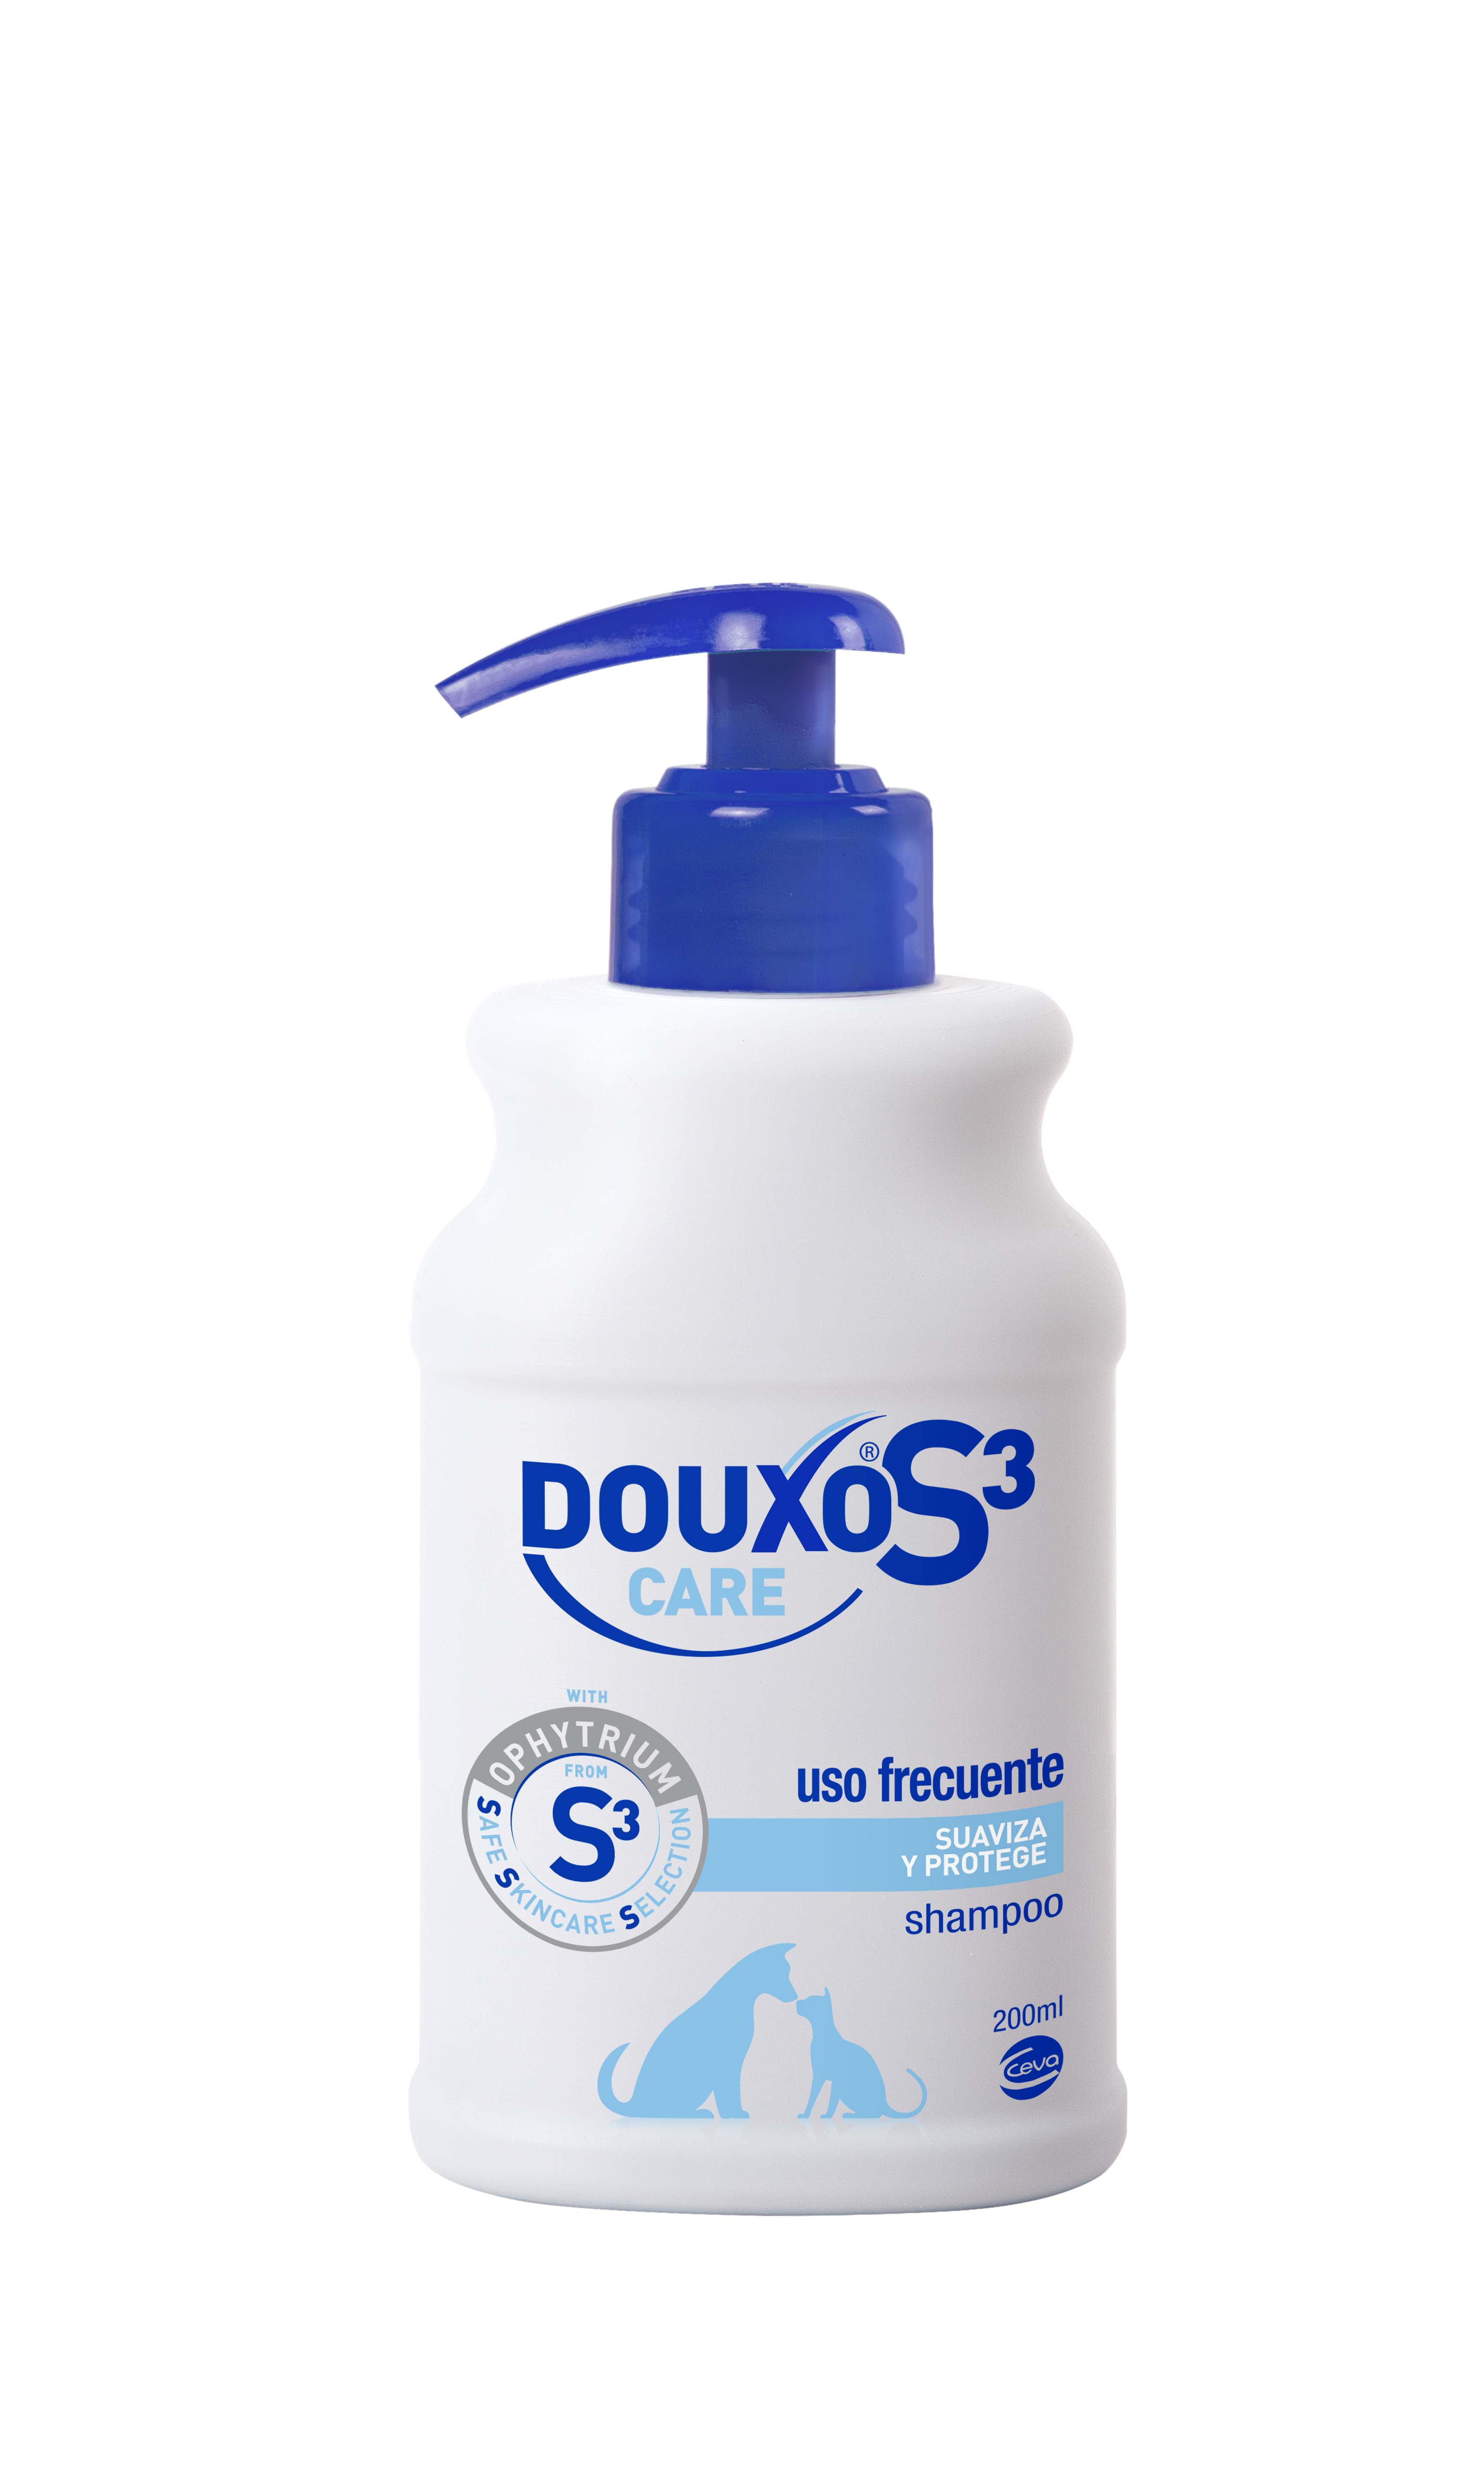 DOUXO CARE CHAMPU 200 ML